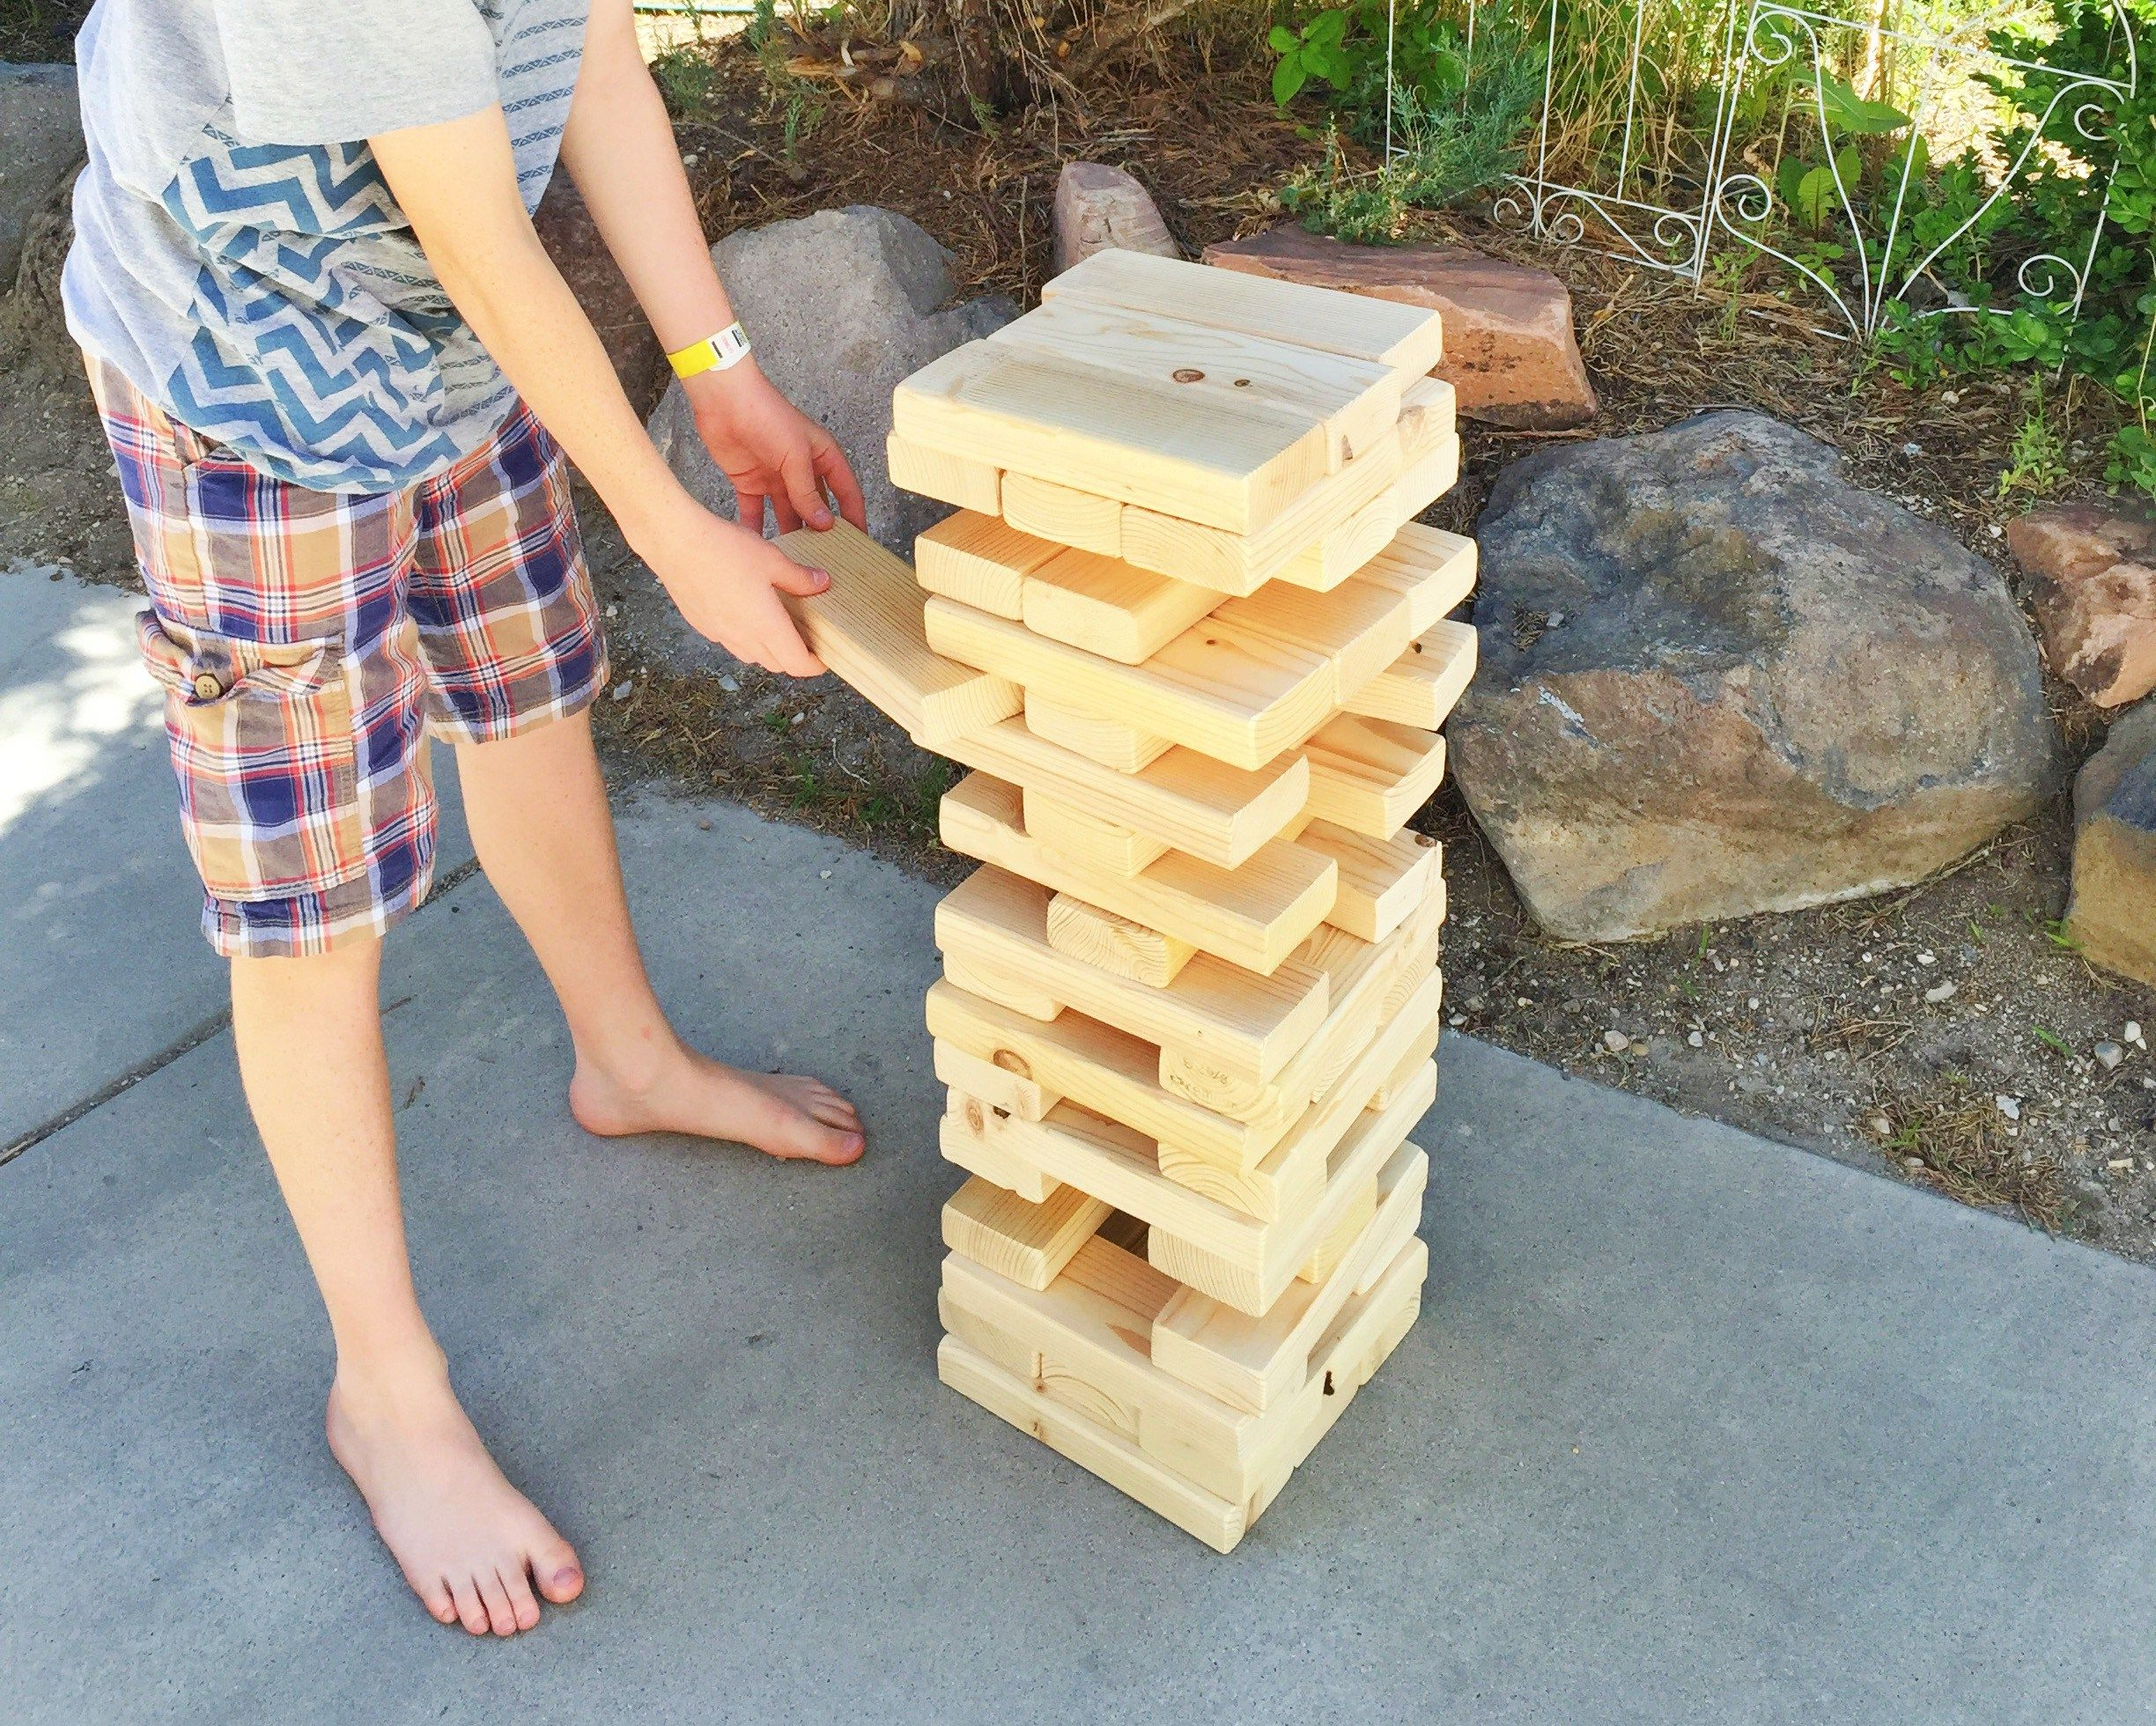 How To Make Your Own Giant Jenga, Lawn Games, Giant Outdoor Games, DIY